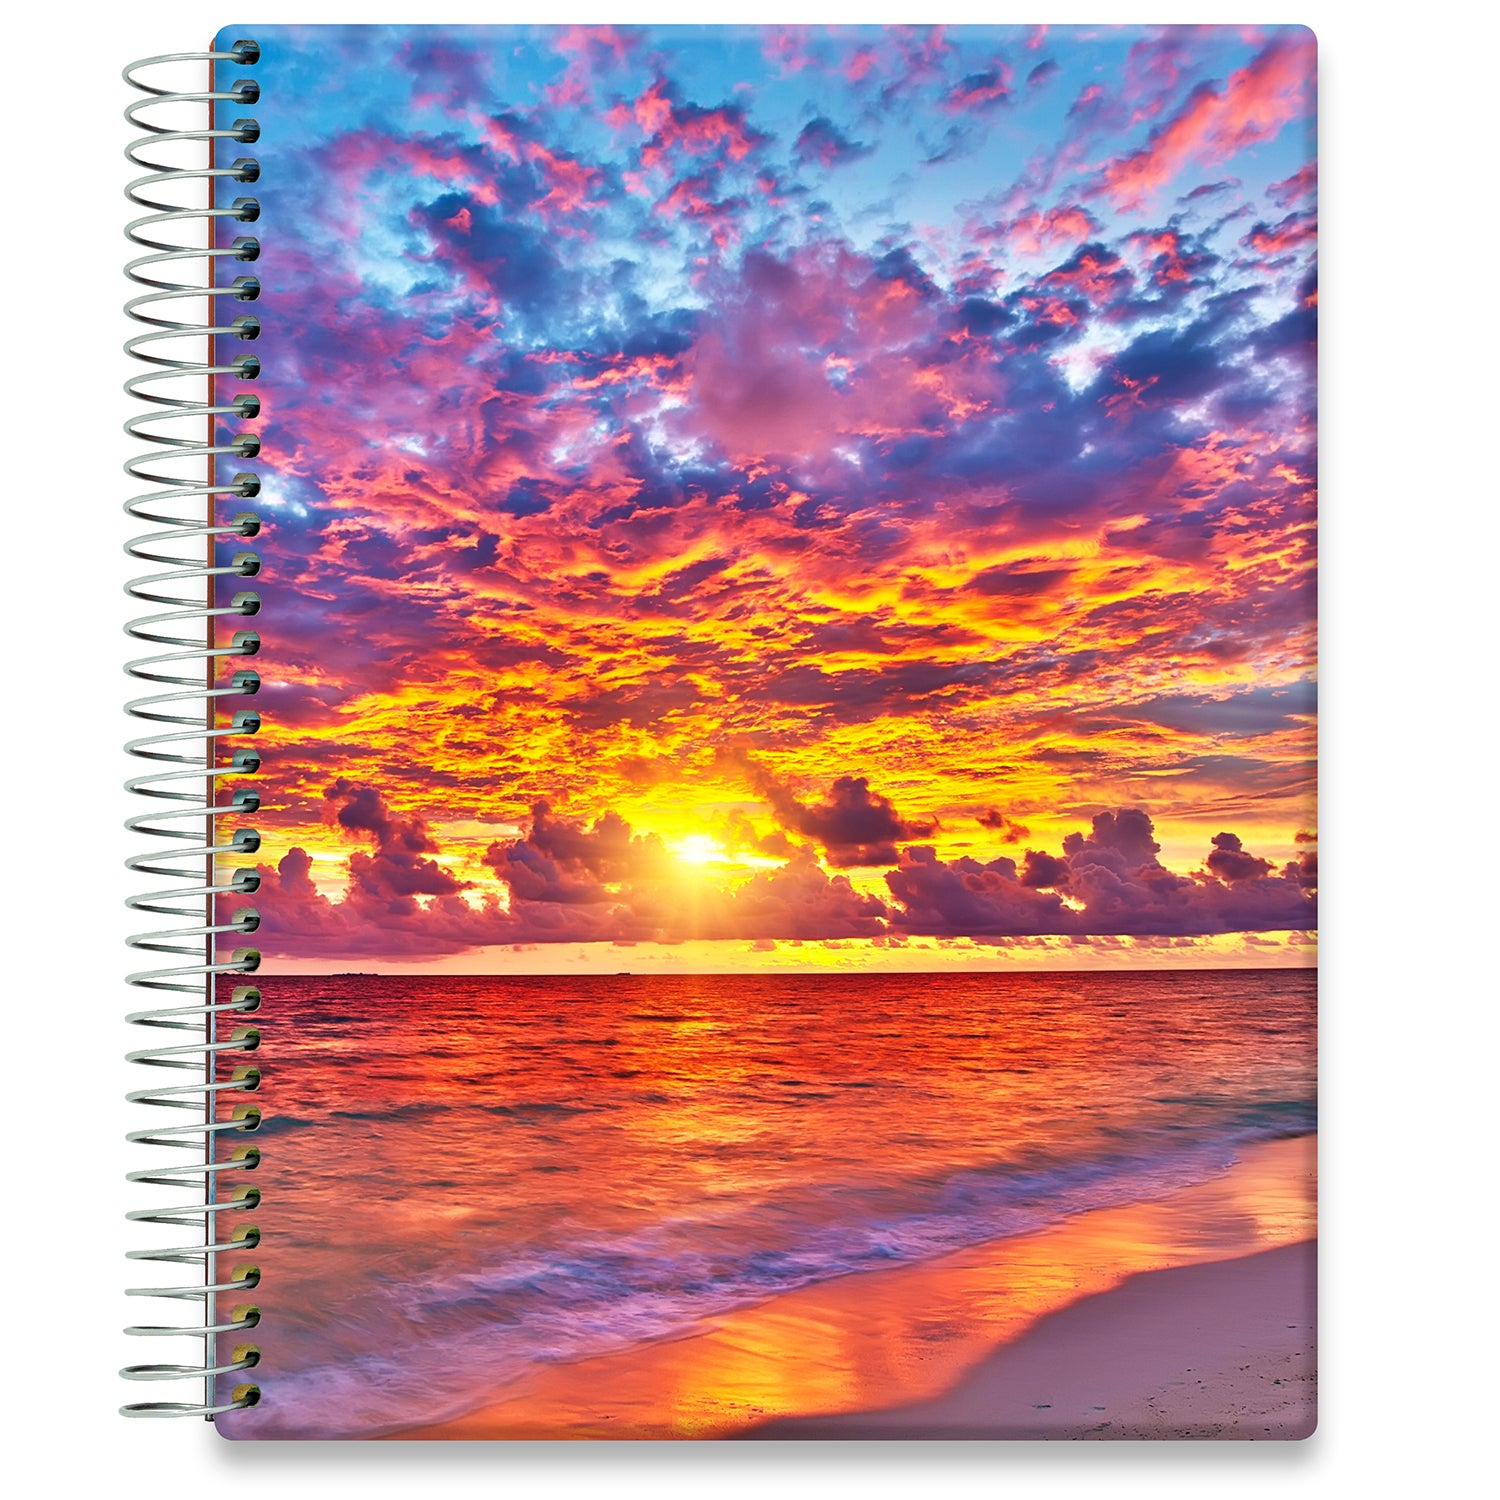 Planner 2021-2022 • April 2021 to June 2022 Academic Year • 8.5x11 Hardcover • Warm Sunset